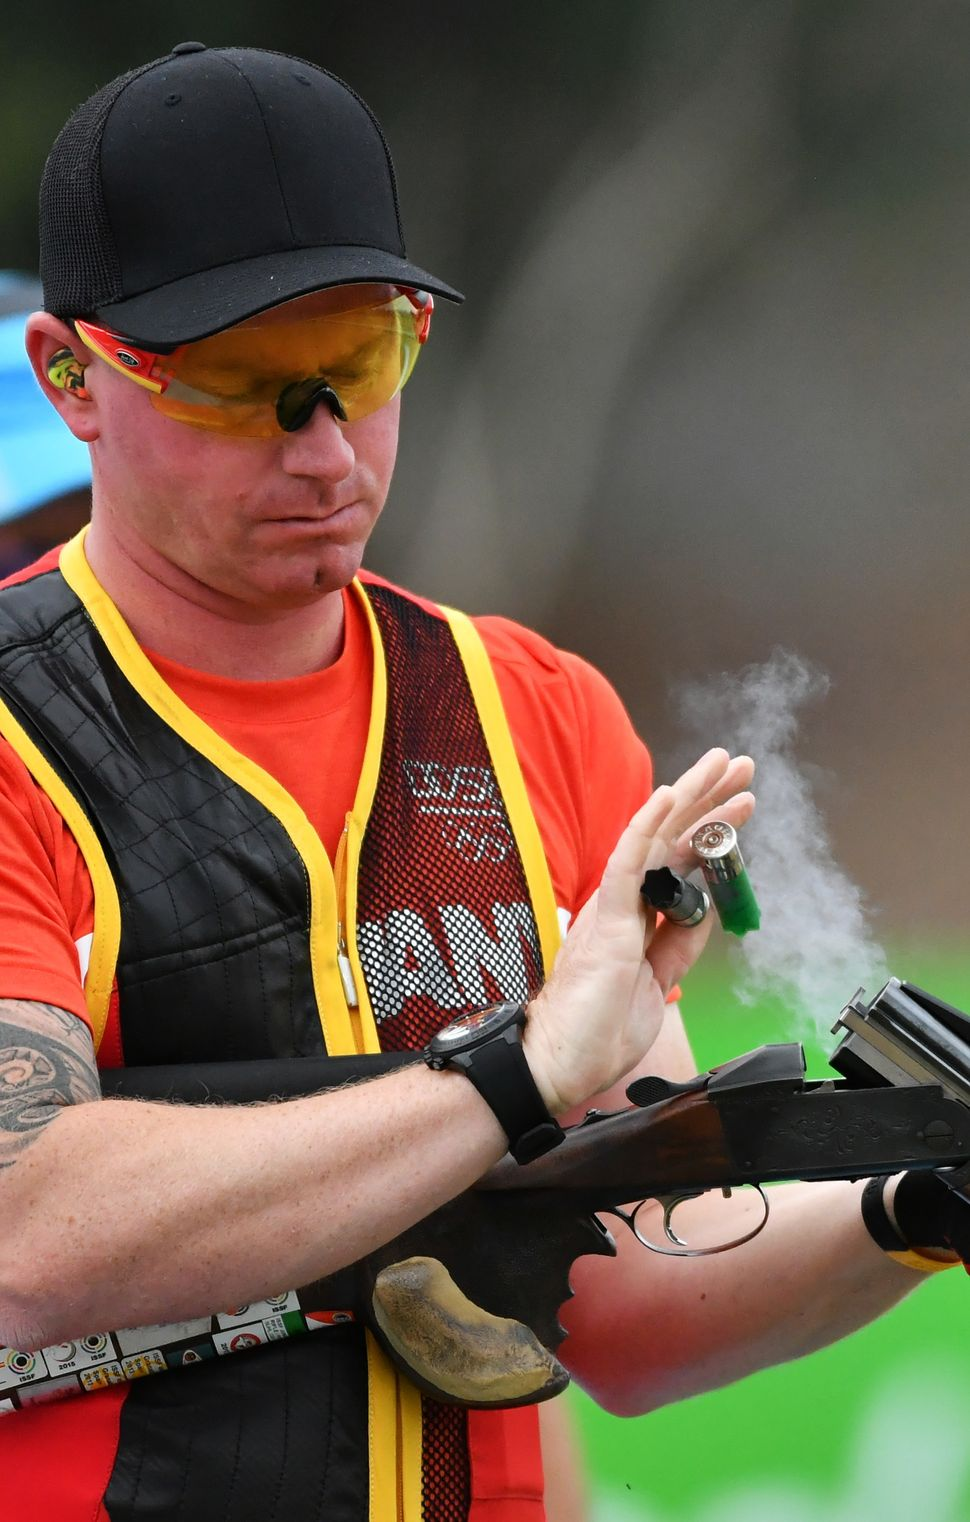 Germany's Andreas Loew competes in the men's double trap qualification during the Rio 2016 Olympic Games at the Olympic Shoot